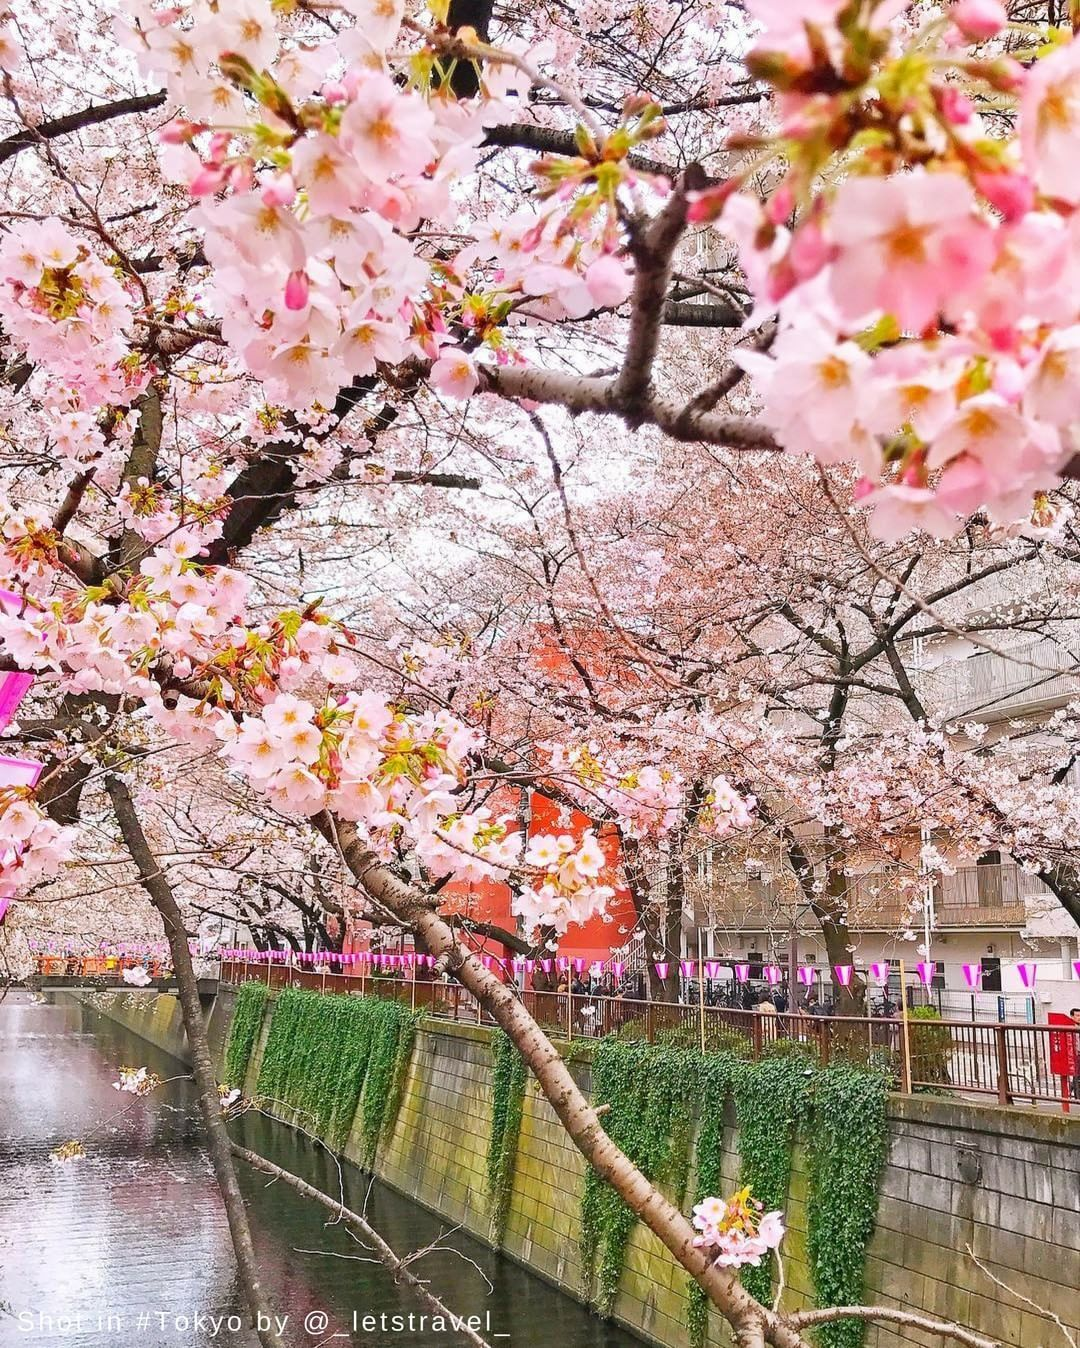 Shangriladestinations Watch Japan S Delicate Cherry Blossoms Spring To Life As The Warm Weather Washes Across The Countr Tokyo Japan Hotels And Resorts Tokyo